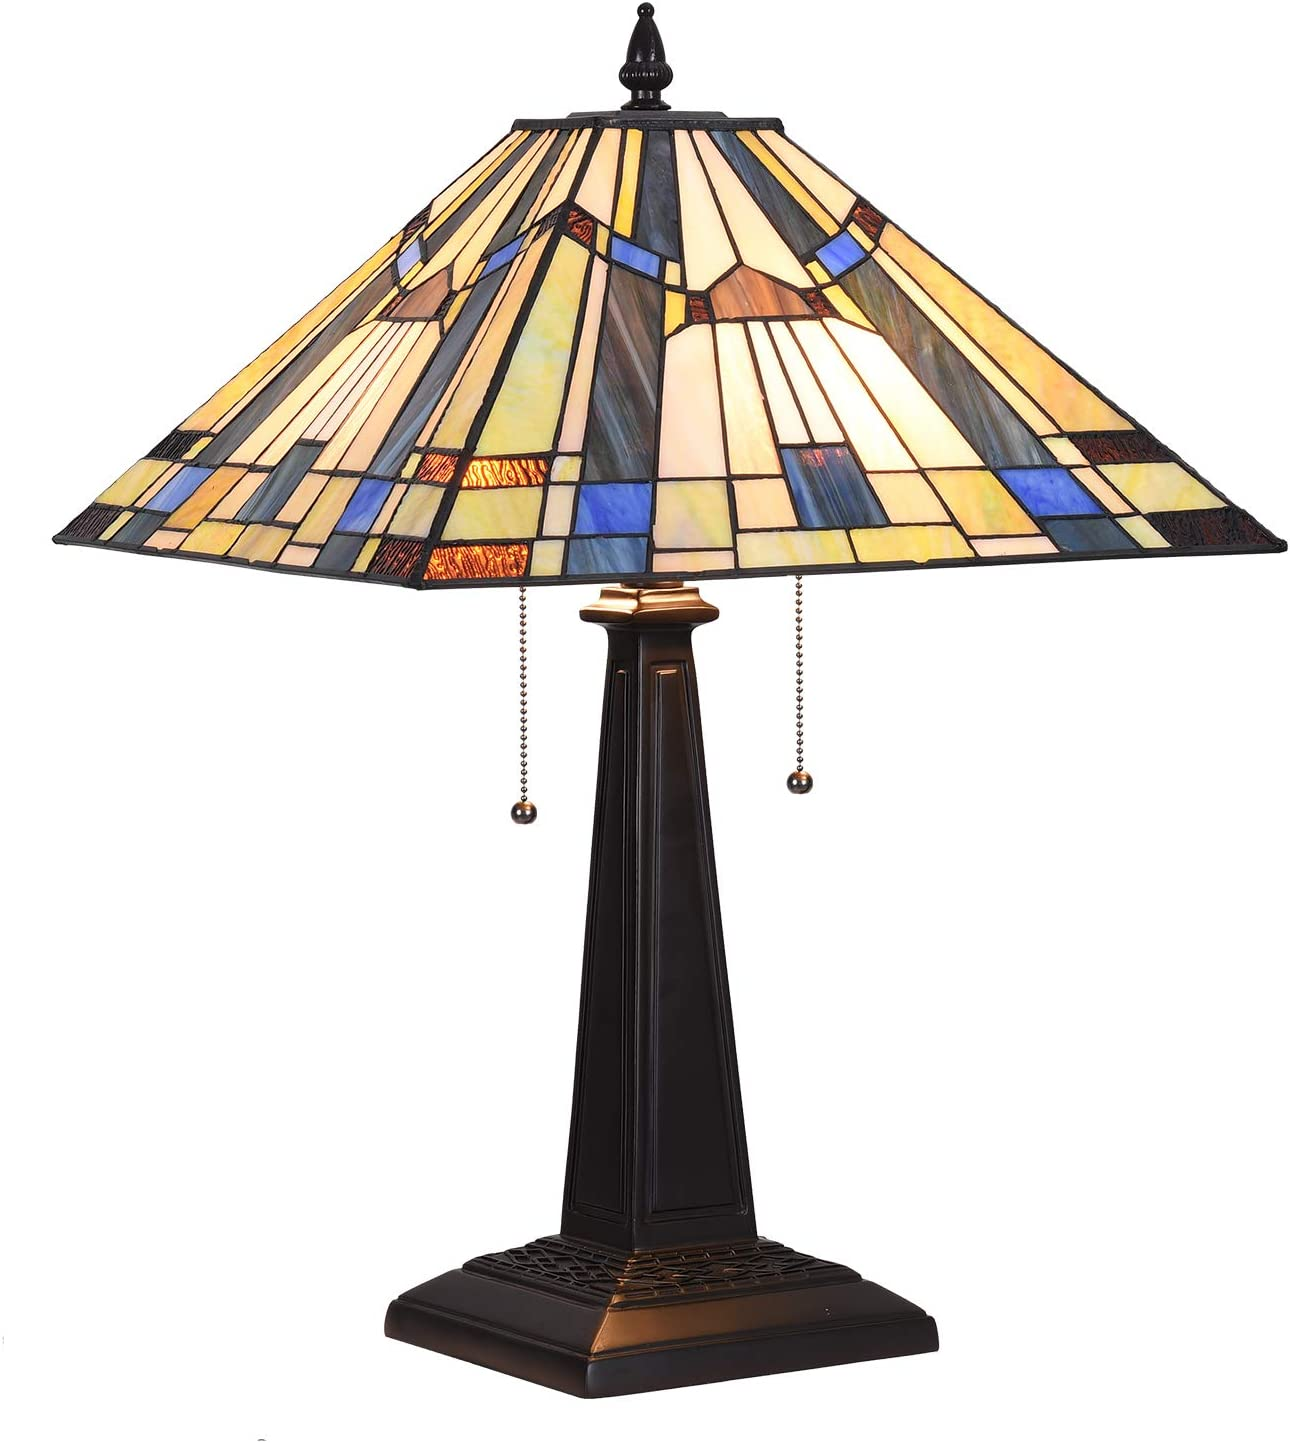 "Stained Glass Desk Lamp, Capulina Handcrafted 15.9"" Mission Tiffany Lamp Table Shades, Timeless Art Stunning Tiffany Desk Lamp, Enhance Home, Office, Desk, Entry, Living Room - Gothic Glass Styles"